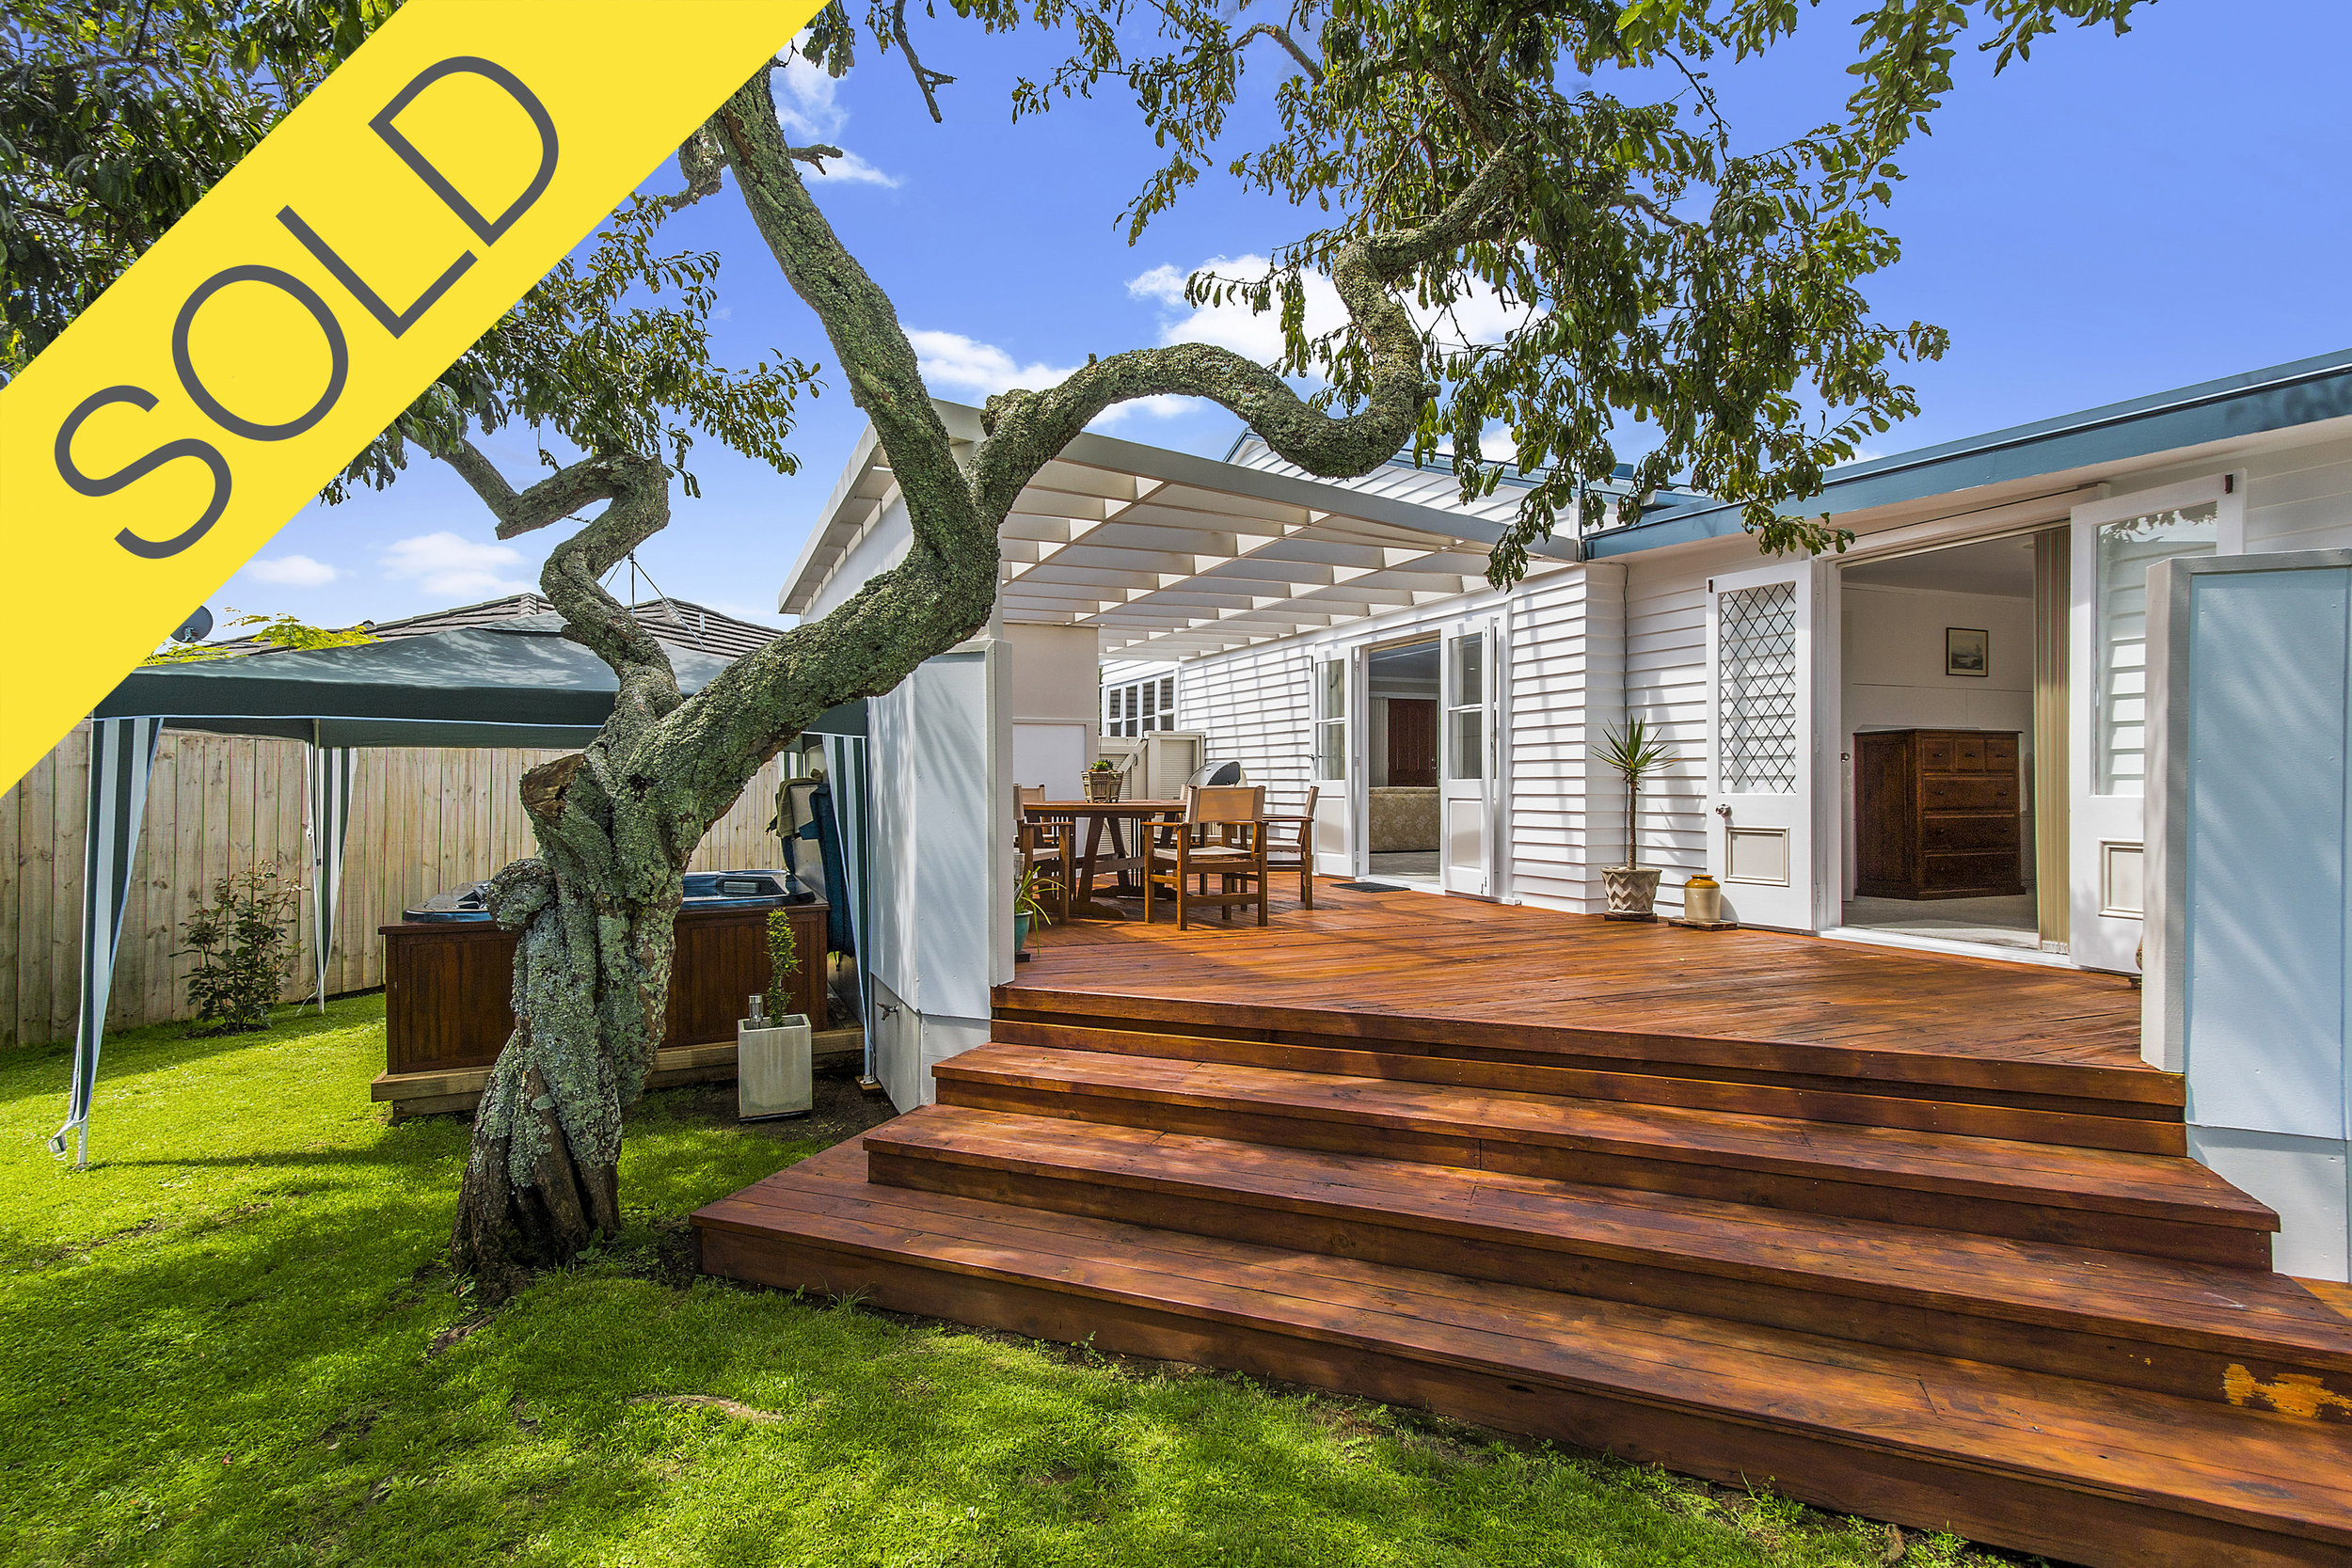 5 Garside Place, Onehunga, Auckland - SOLD MARCH 20182 Beds | 1 Bath | 3 Parking